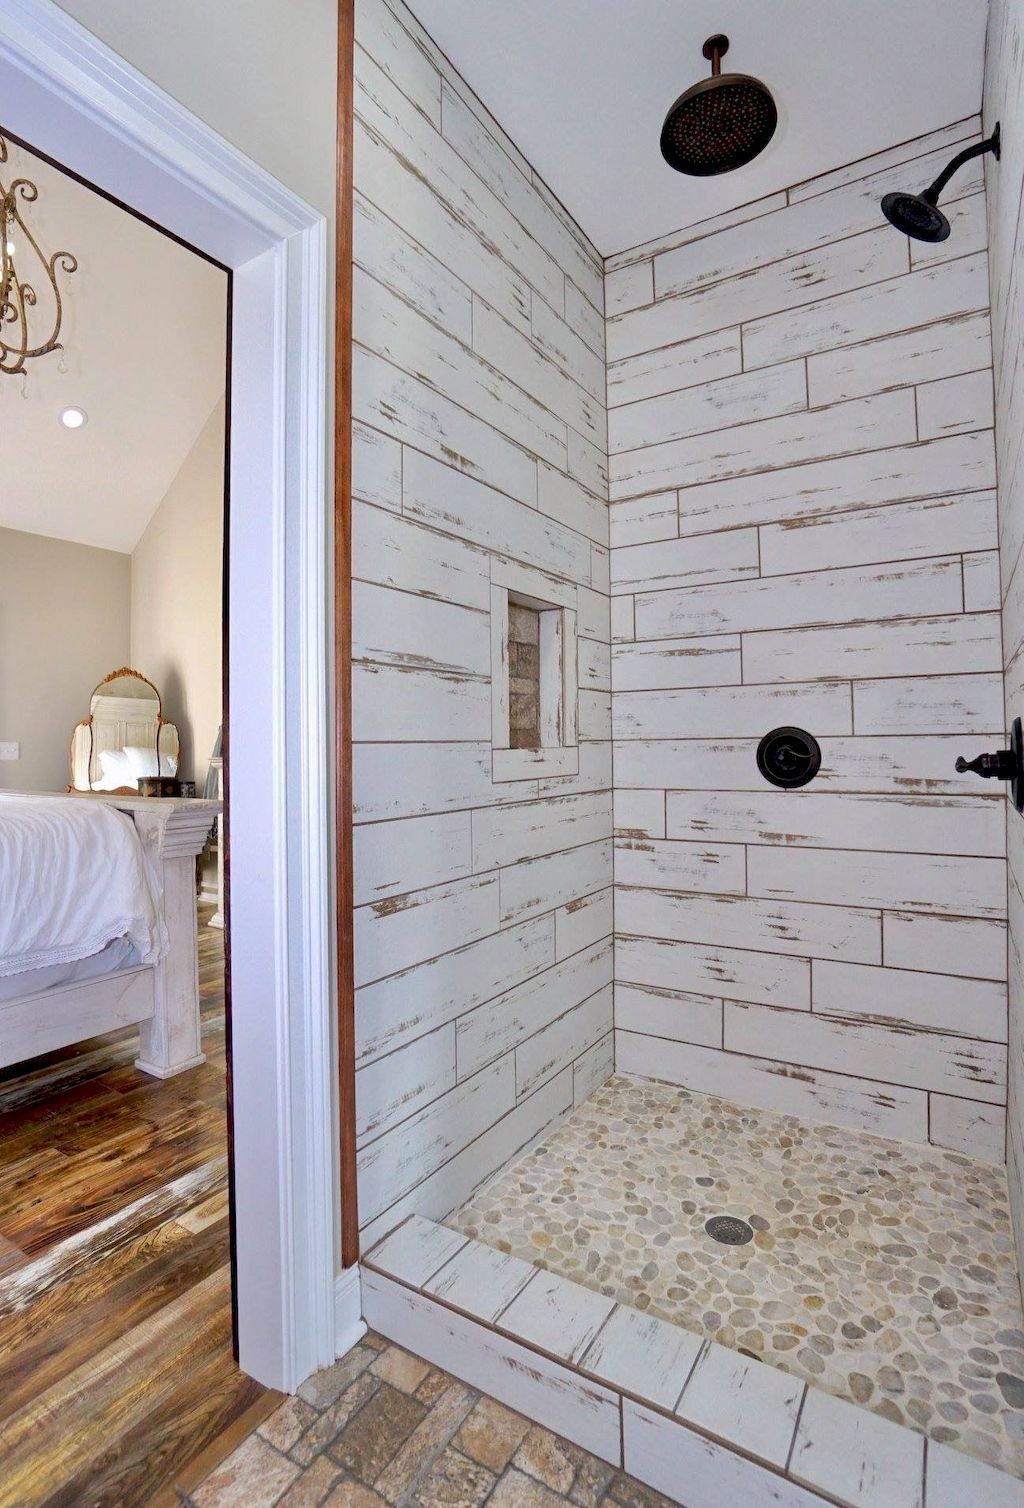 Inspiring Bathroom Tile Showers Design Ideas 19